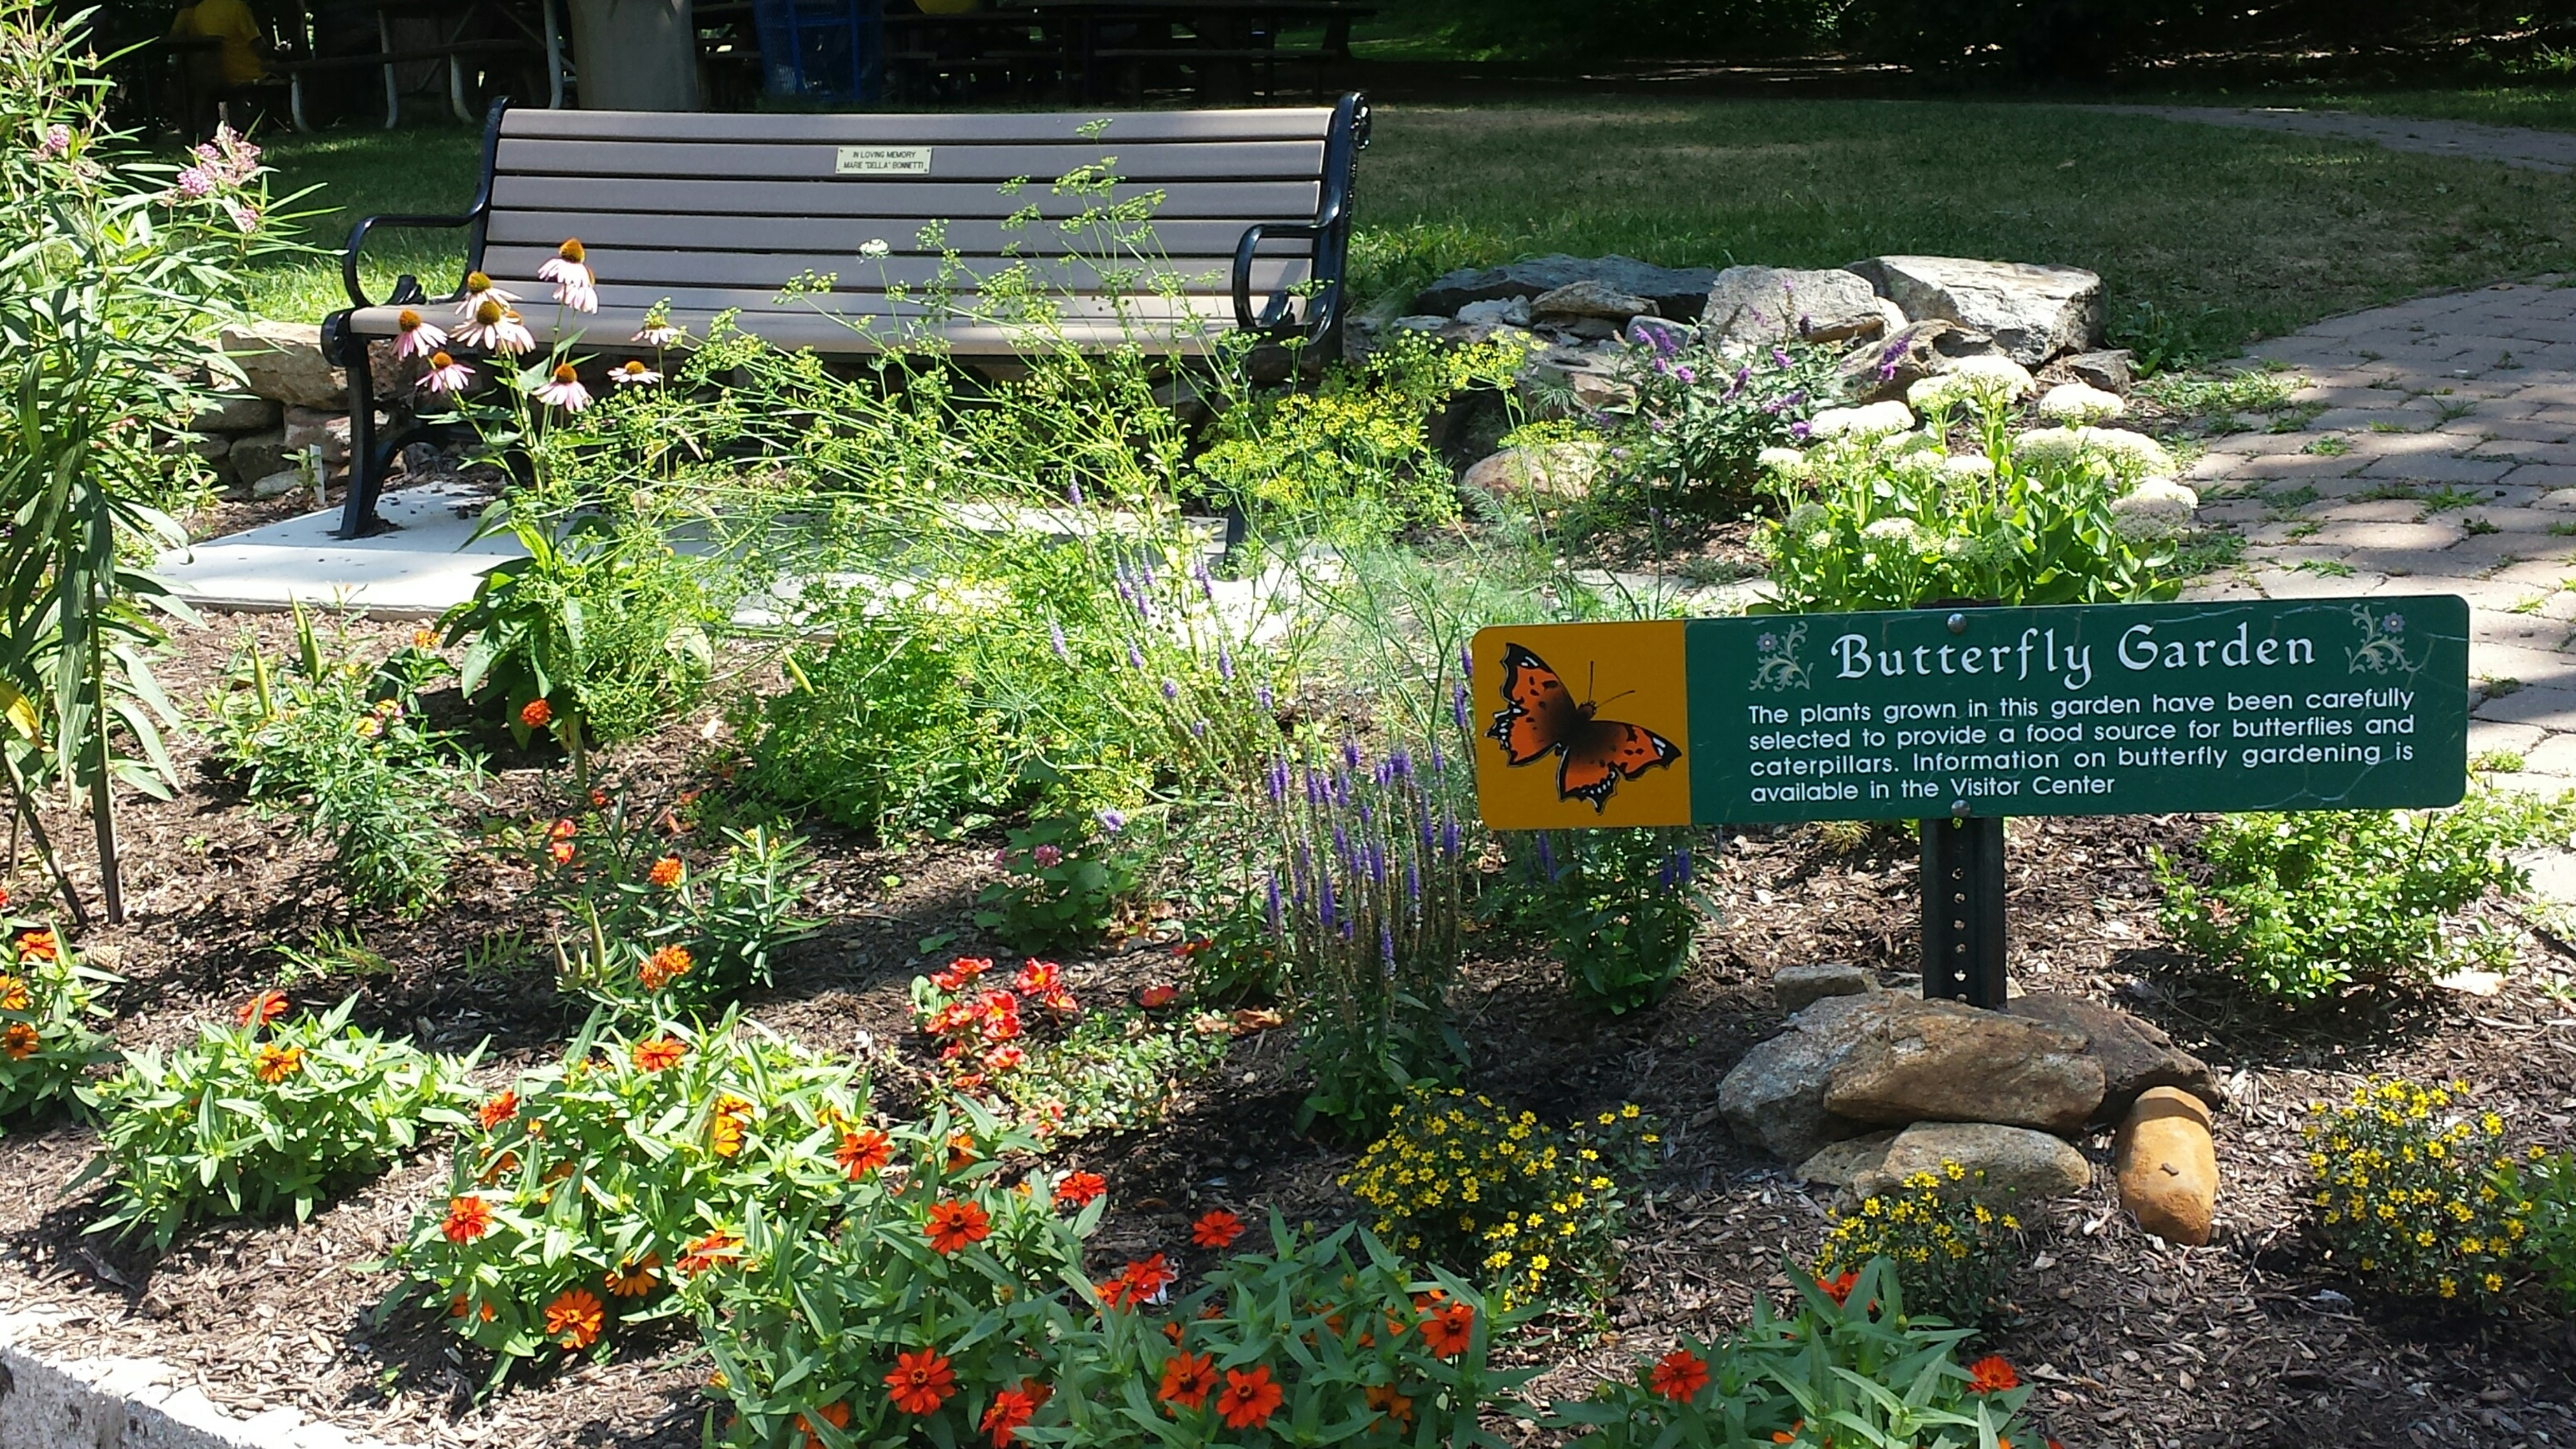 Butterfly garden county of union new jersey for Landscape gardeners